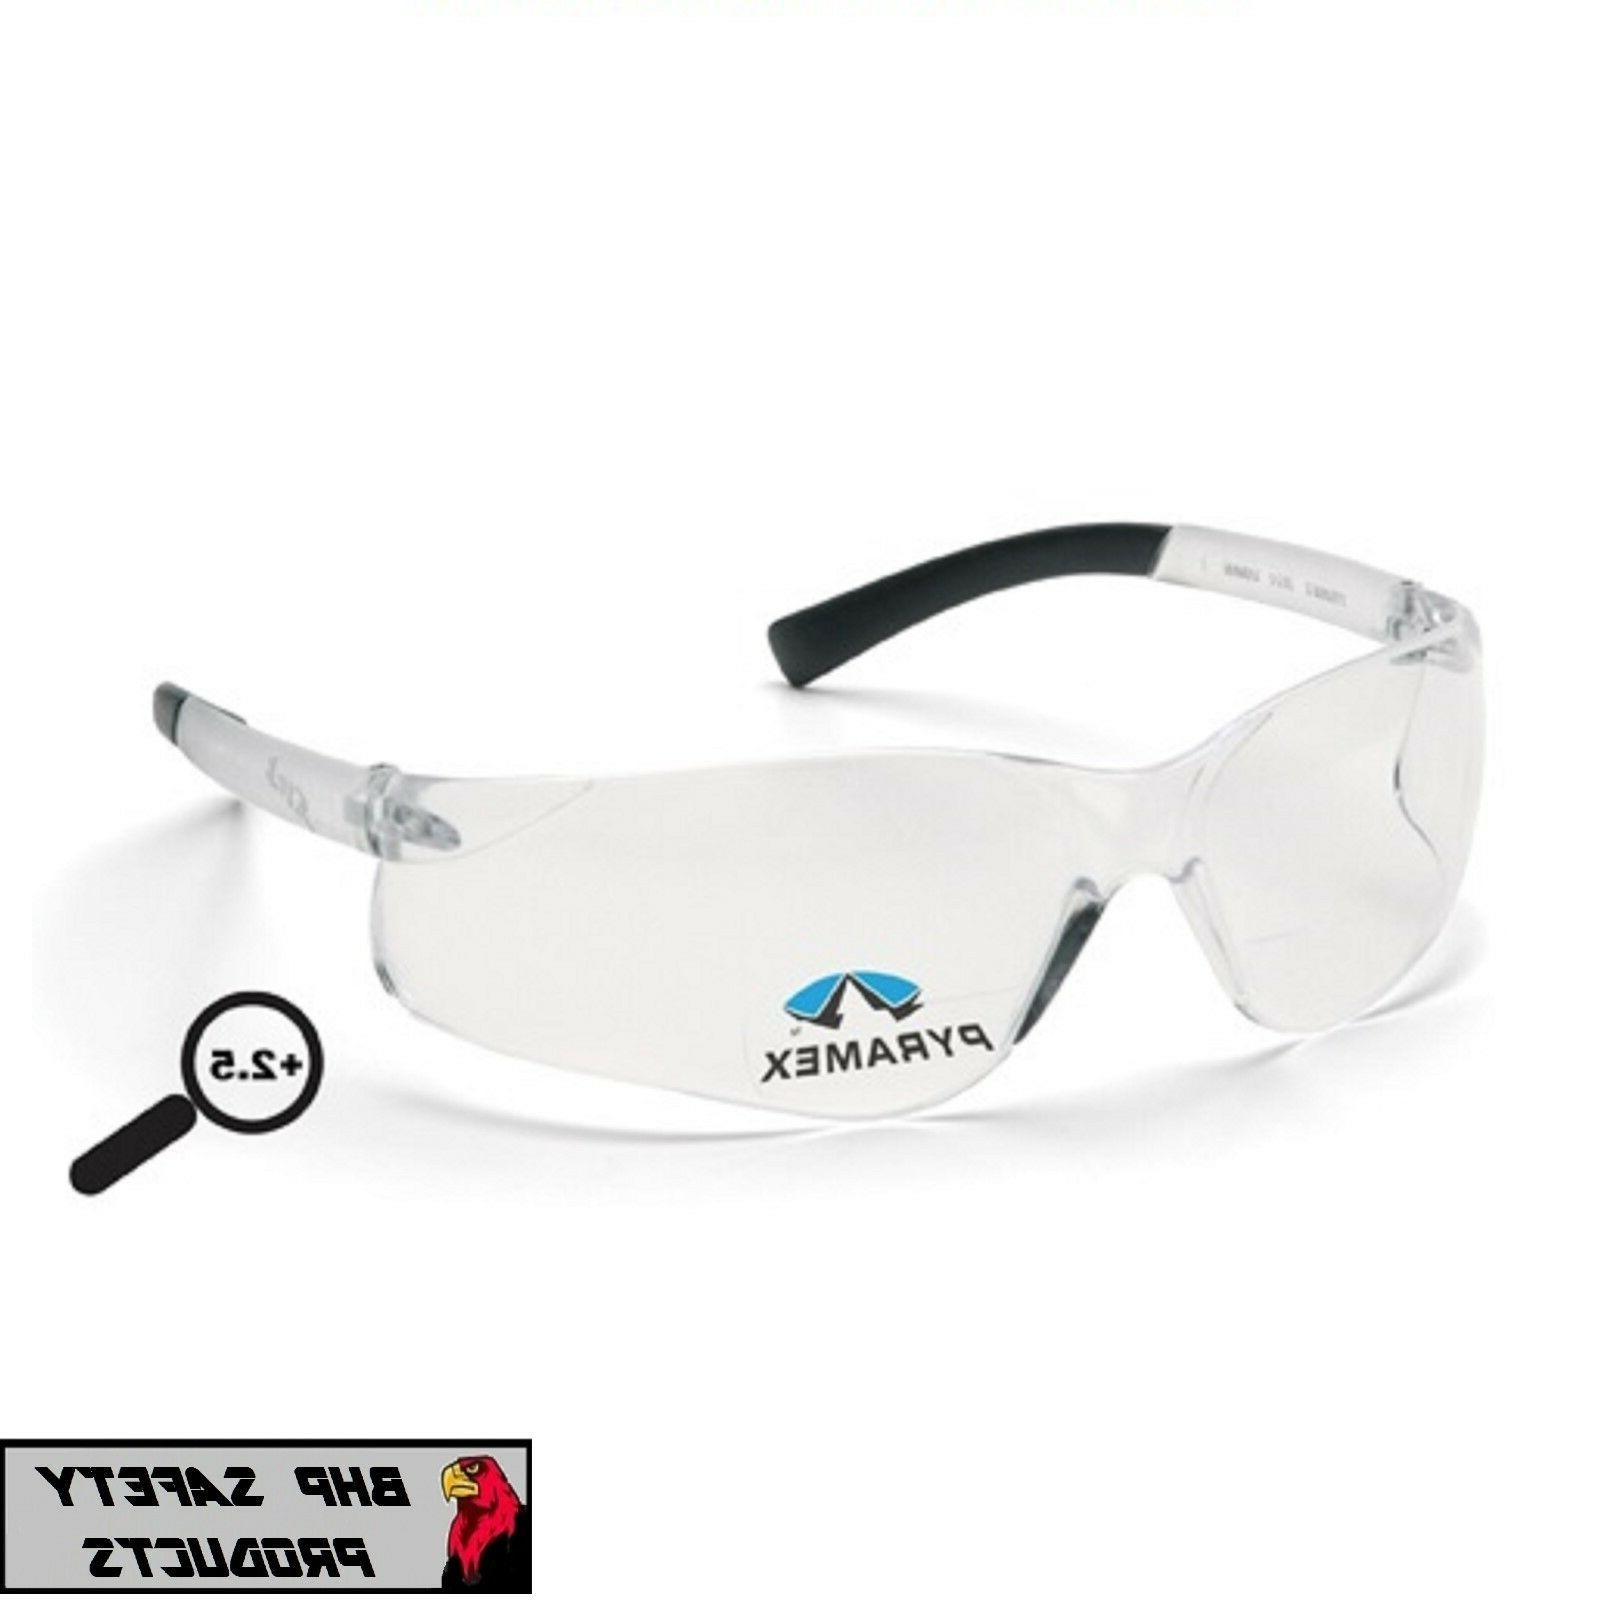 PYRAMEX ZTEK READER SAFETY GLASSES CLEAR BIFOCAL +2.50 POWER